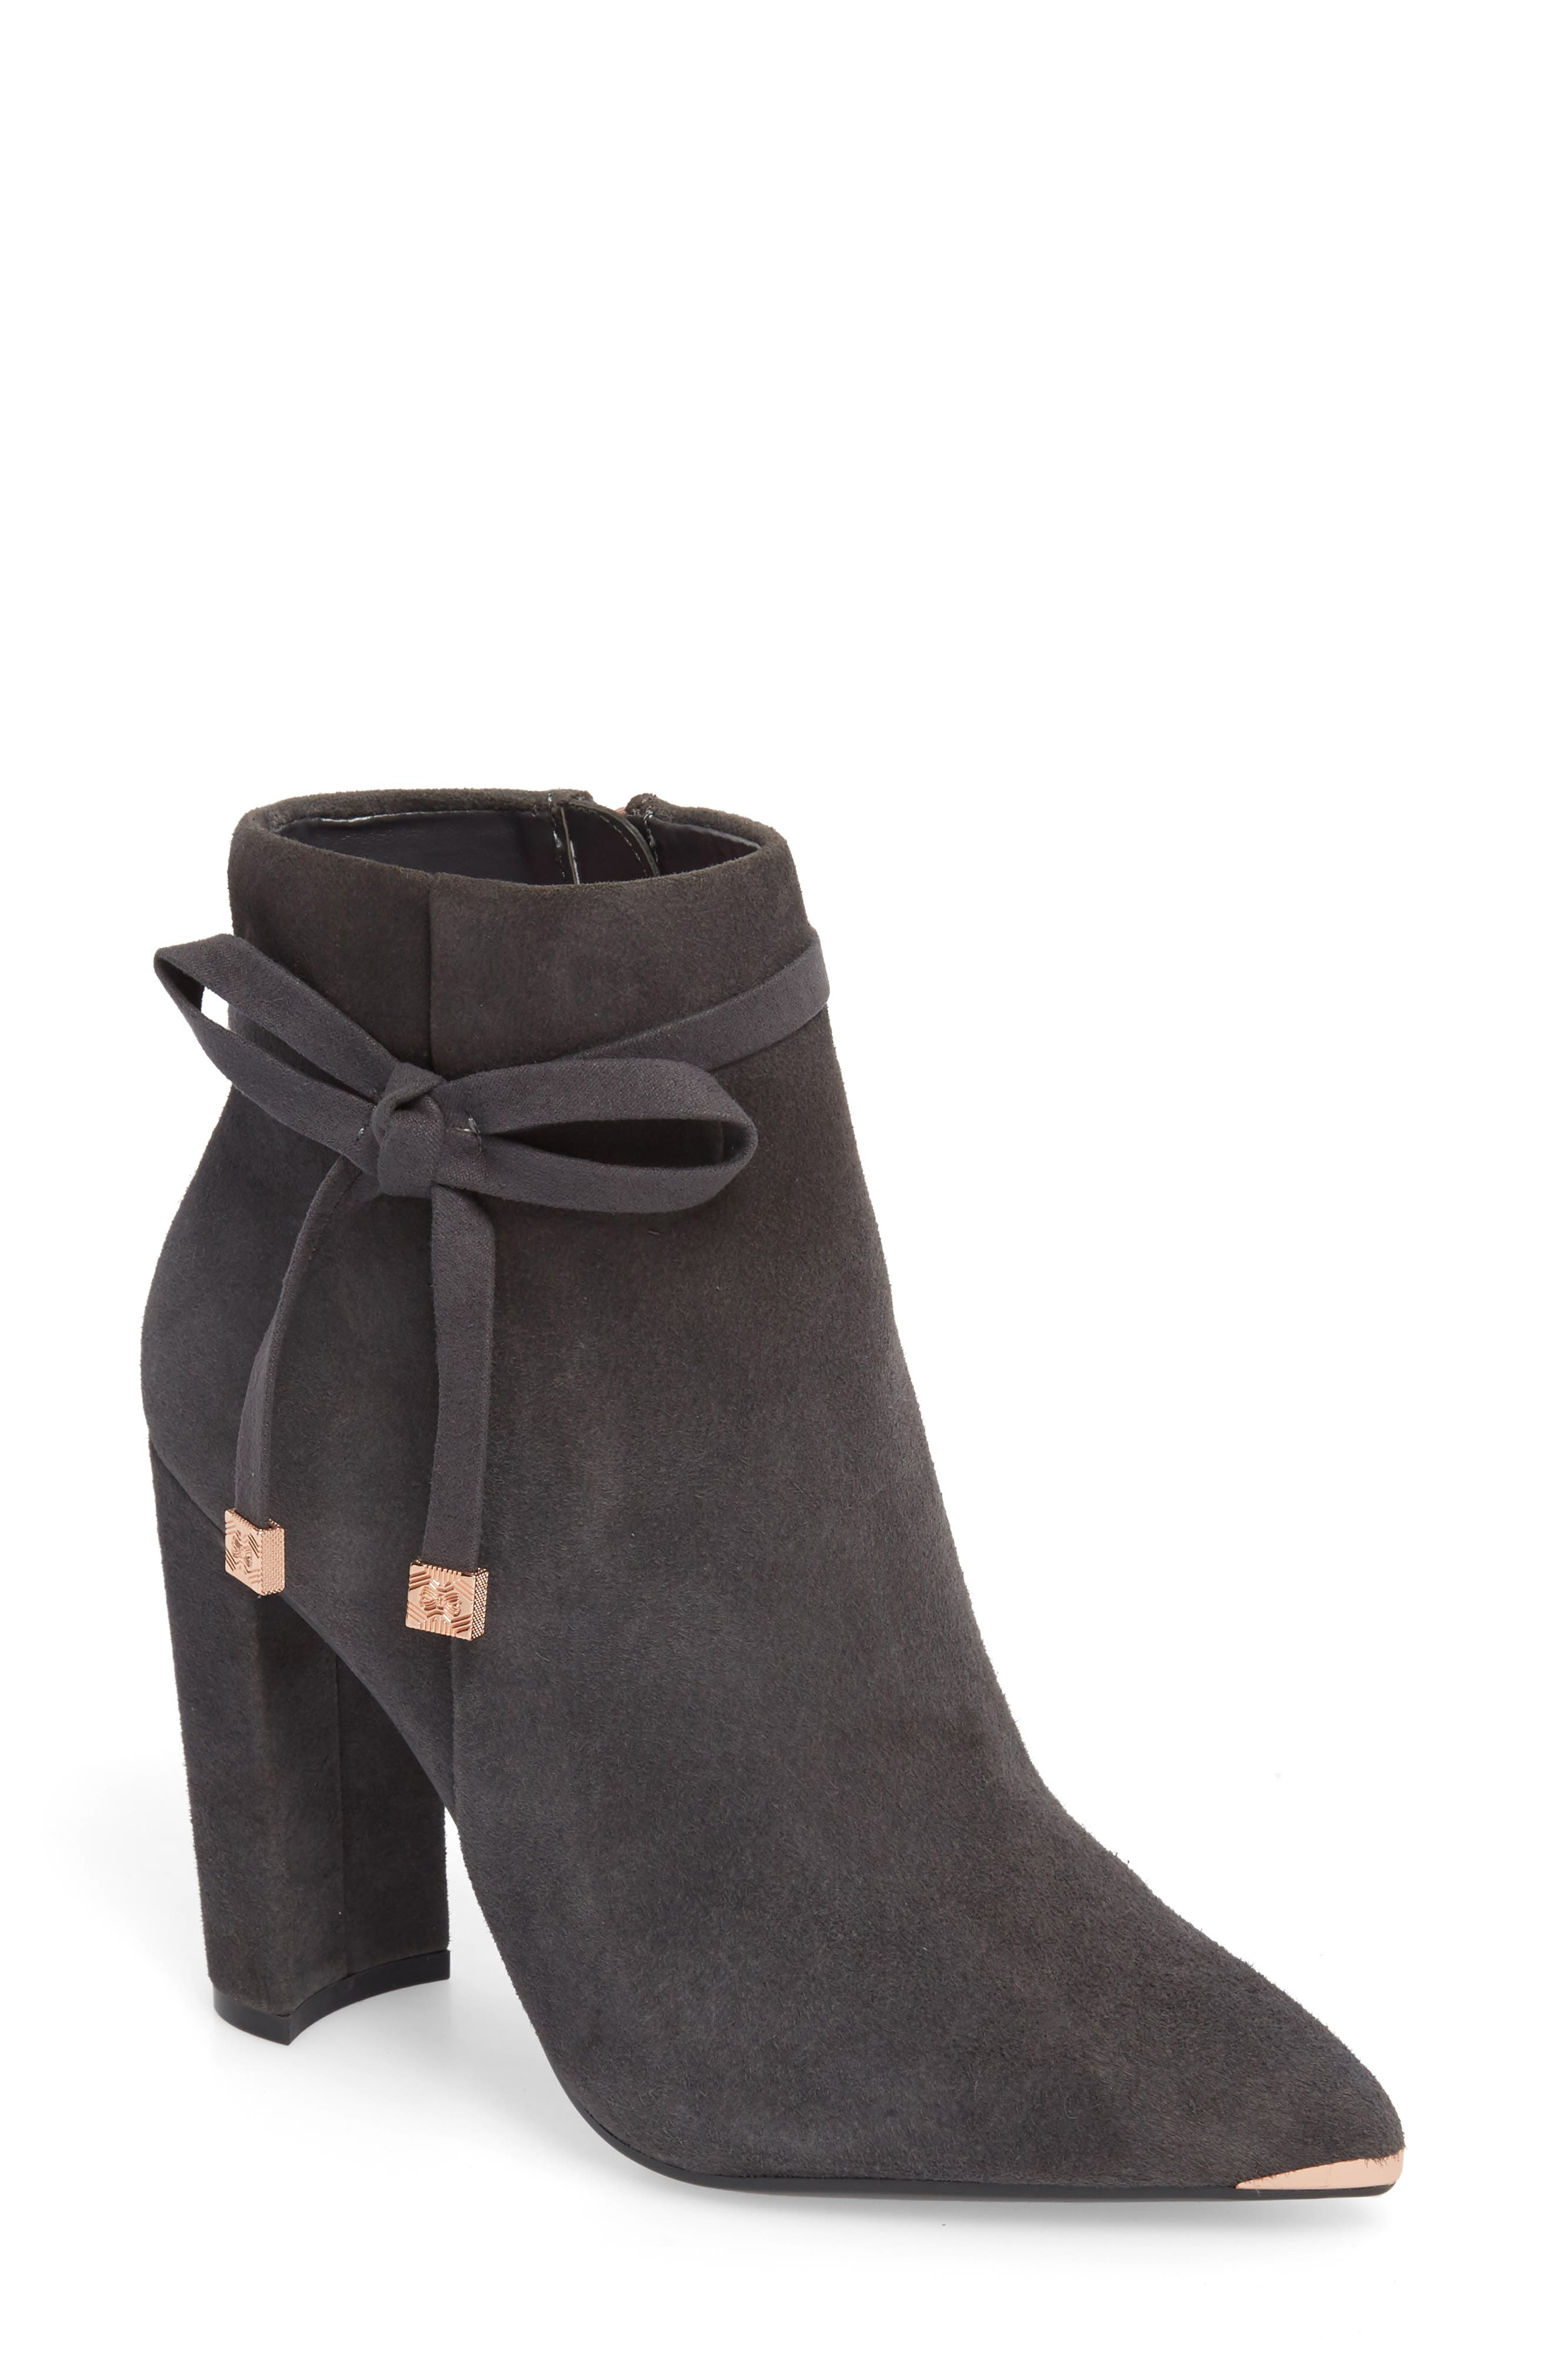 Ted Baker London Qatena Bootie, Grey